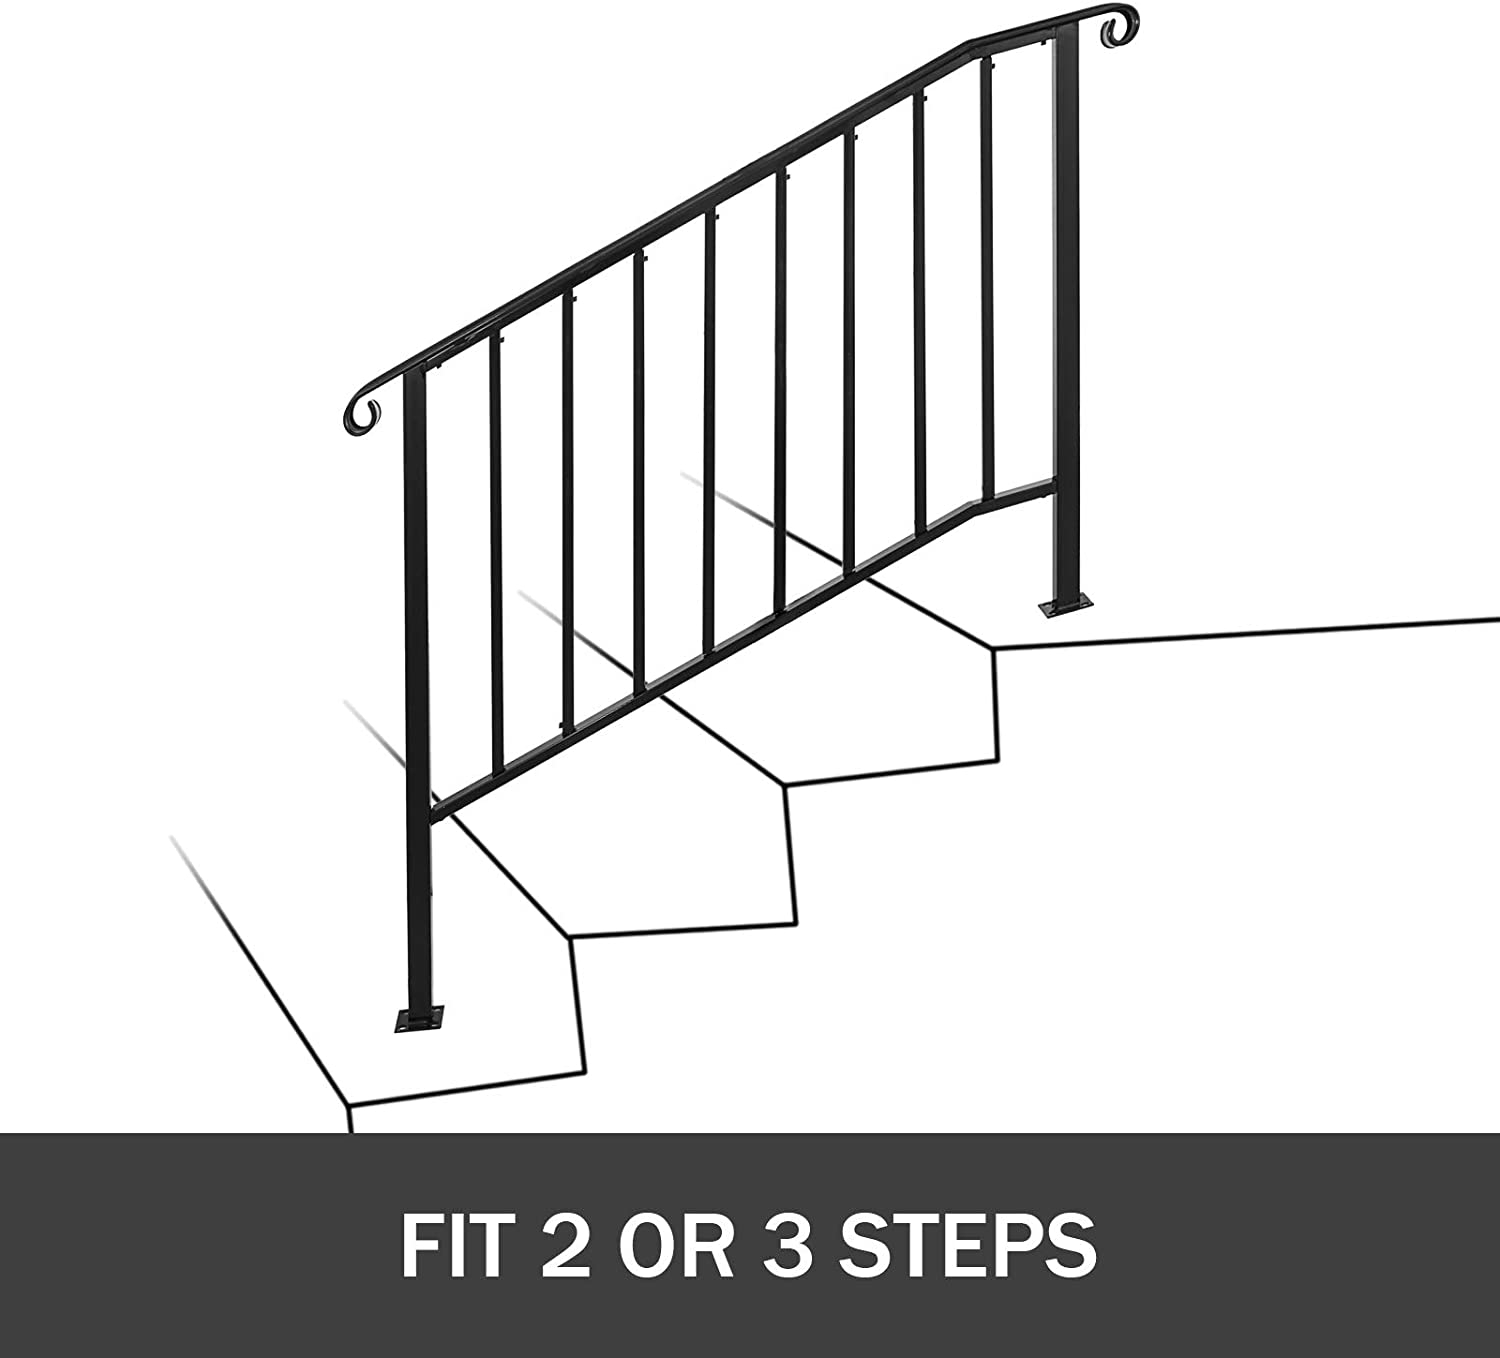 Handrails Happybuy Handrail Picket 2 Fits 2 Or 3 Steps Matte | 3 Step Stair Railing | Manufactured Home | Basic Deck | Residential Stair | 2 Bar | Three Step